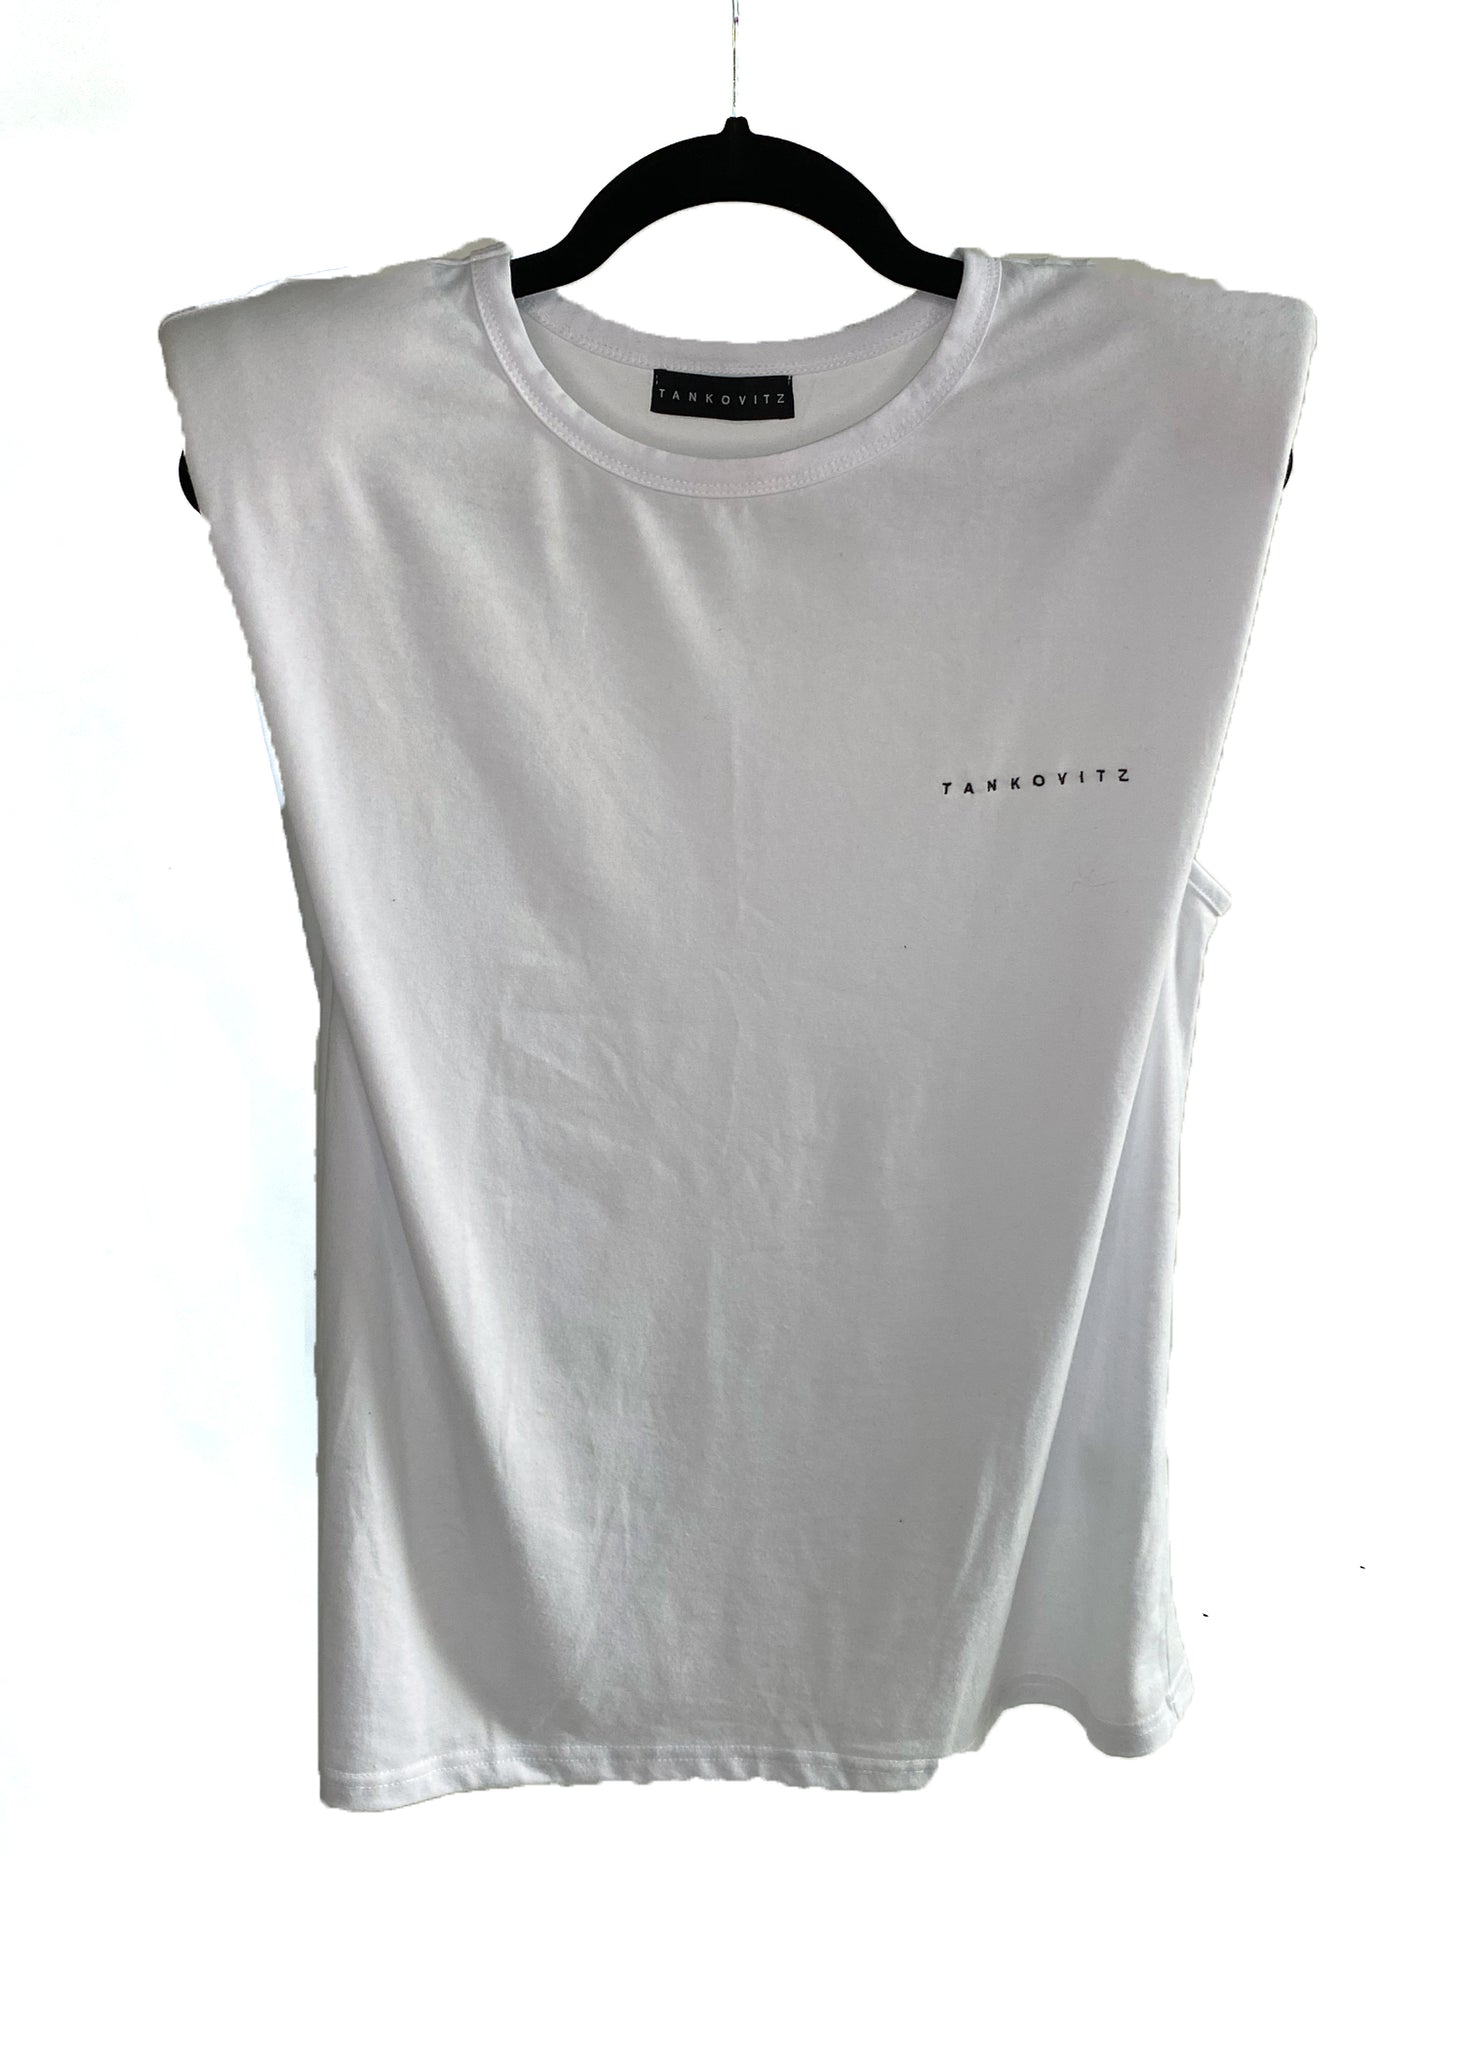 Embroidered TANKOVITZ on white